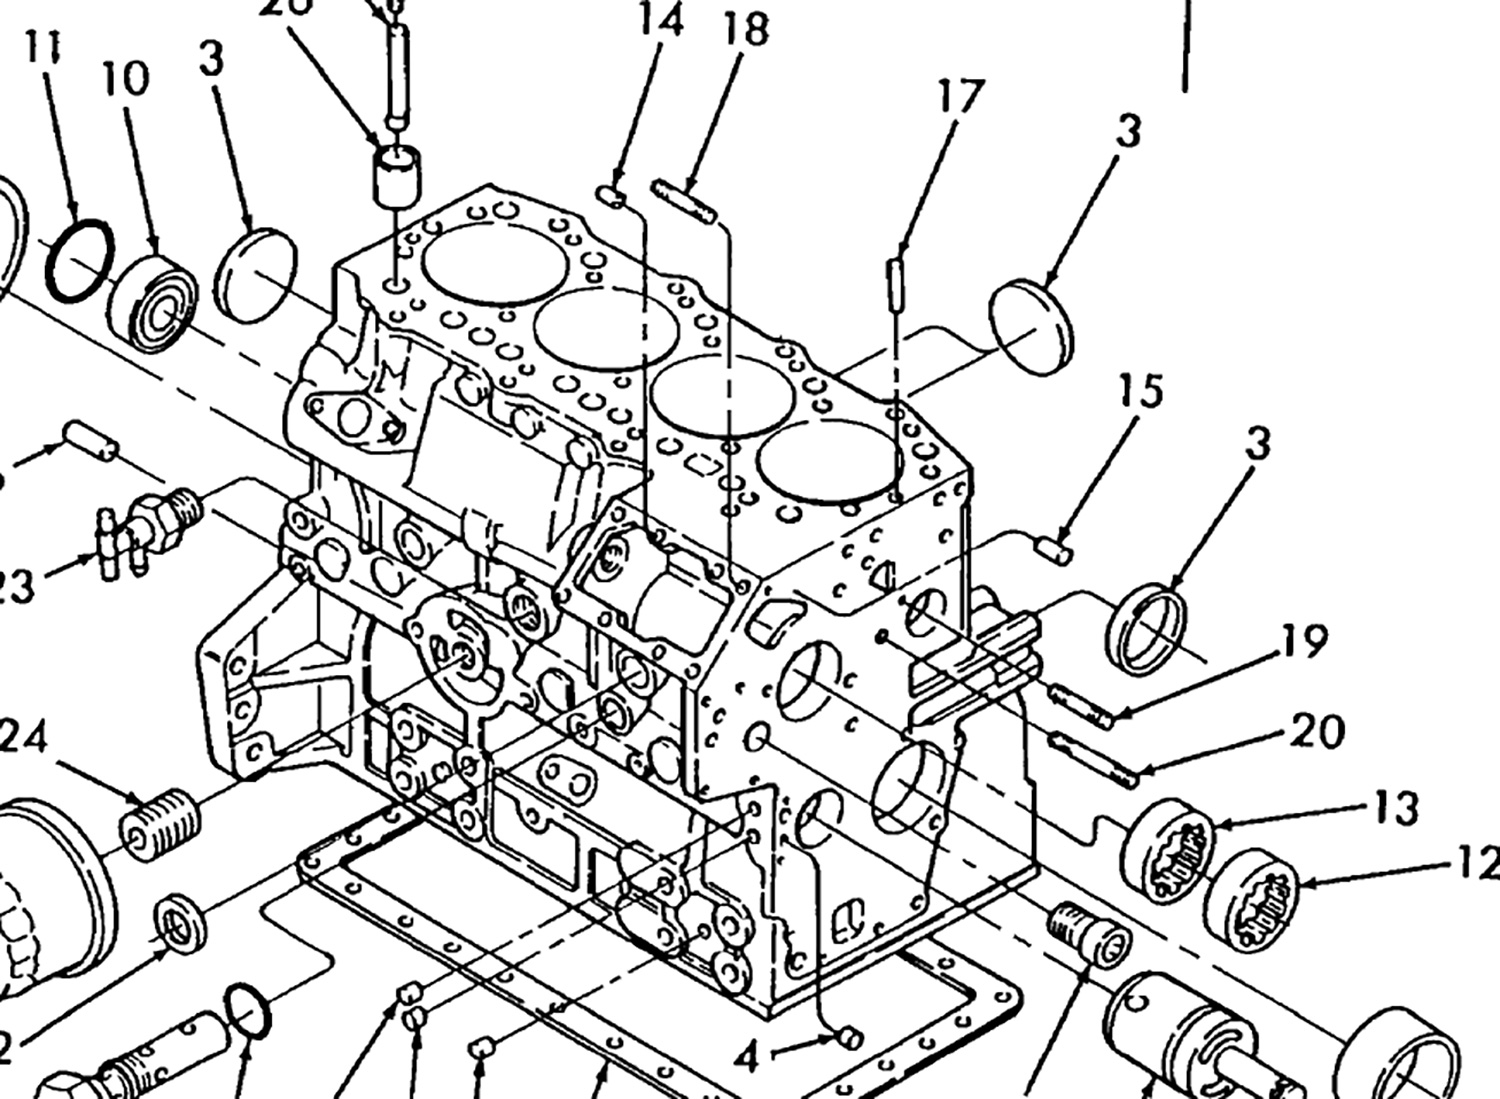 1710 ford tractor wiring harness picture - ground fault breaker wiring  diagram for spas   bege wiring diagram  bege place wiring diagram - bege wiring diagram